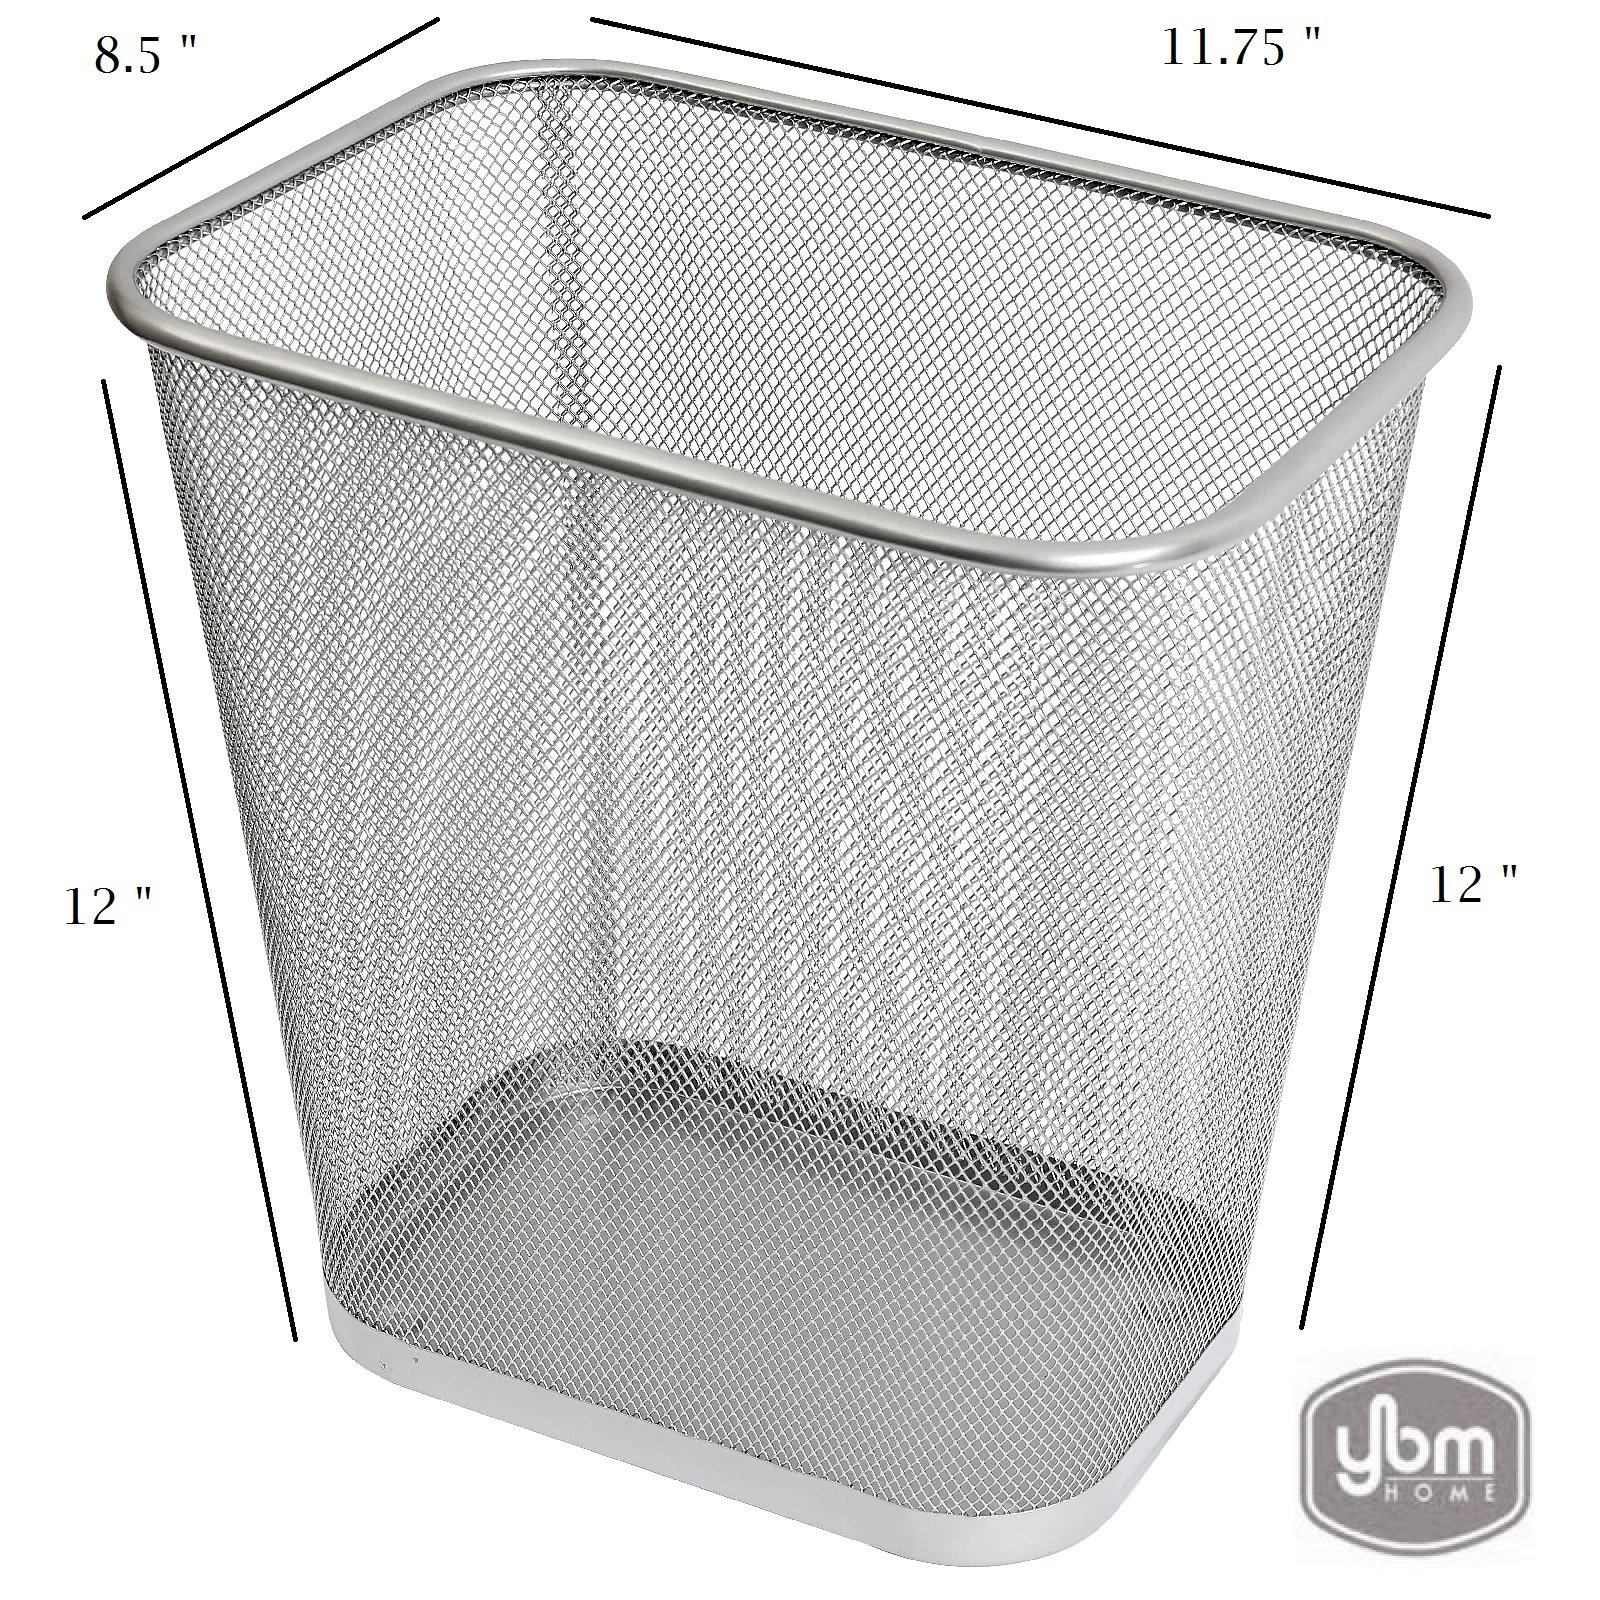 Ybmhome Steel Mesh Rectangular Open Top Waste Basket Bin Trash Can for Office Home 8x12x12 Inches 1042s (1, Silver)